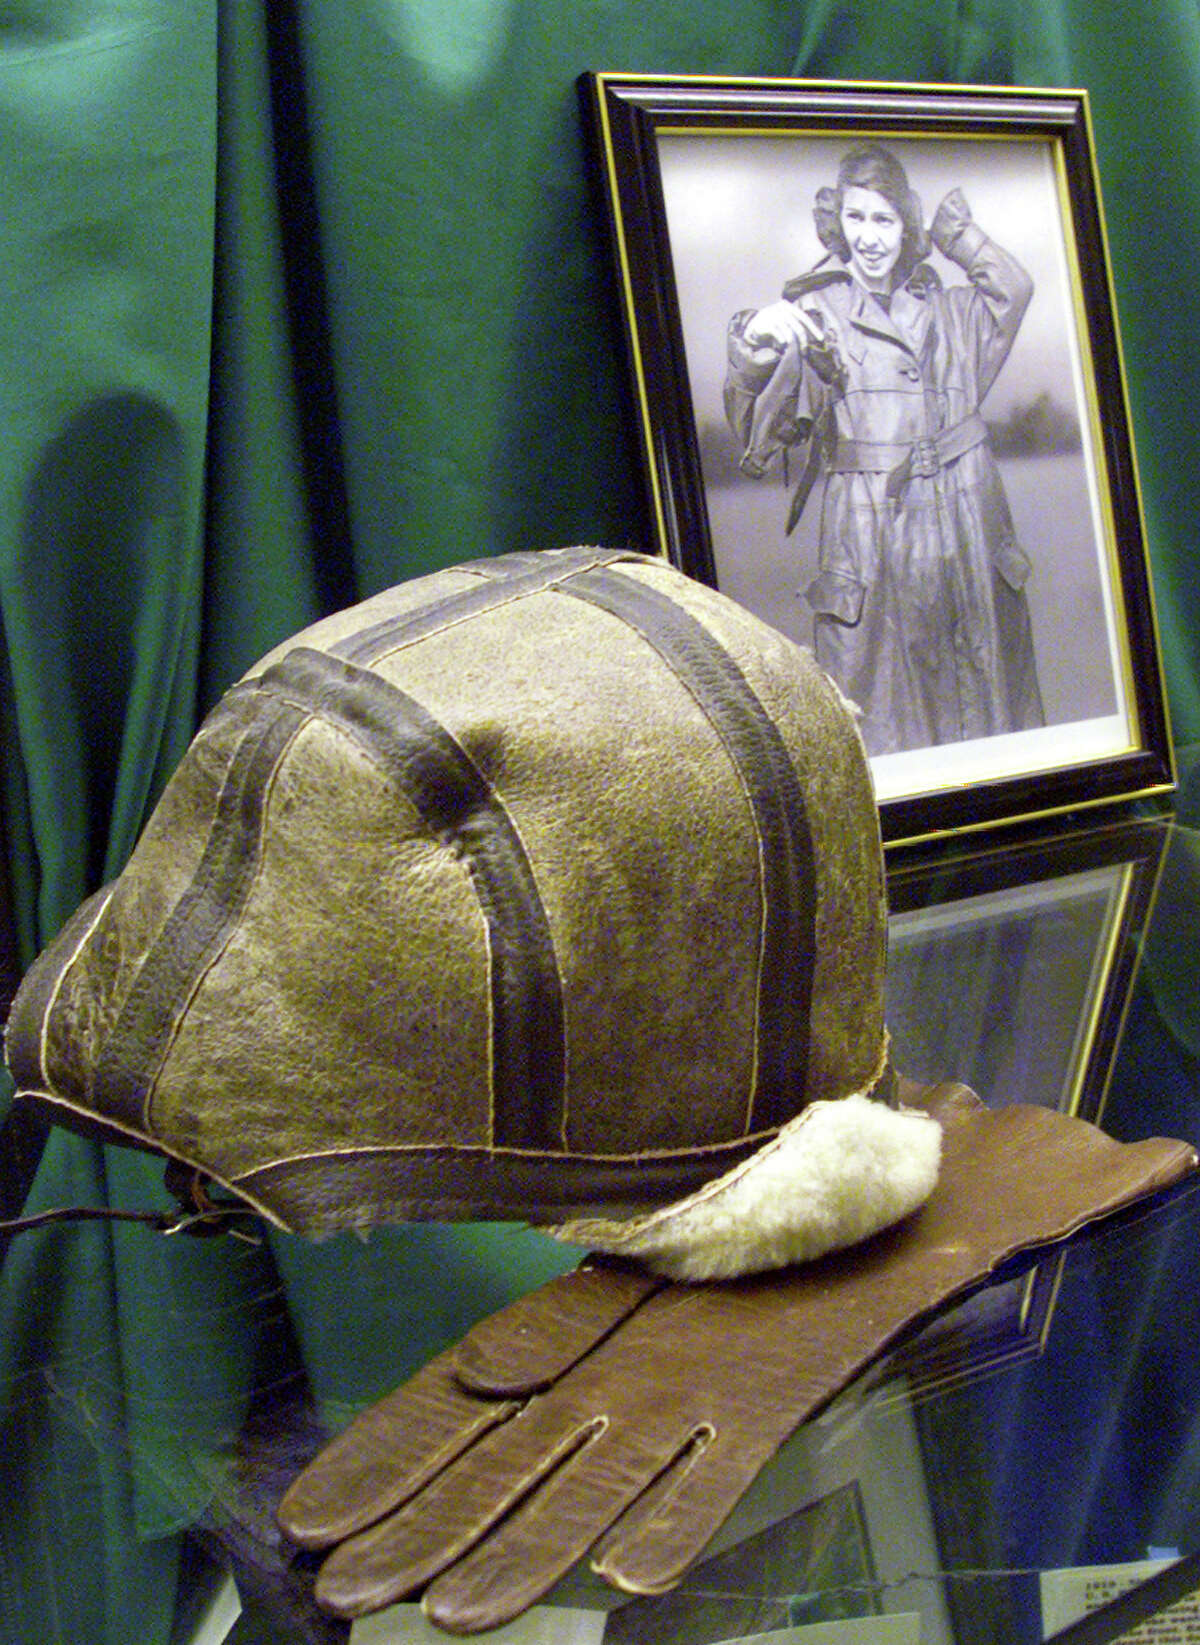 The flying hat and gloves once belonging to Katherine Stinson have been displayed in the hallway at Stinson Middle School on the northside.